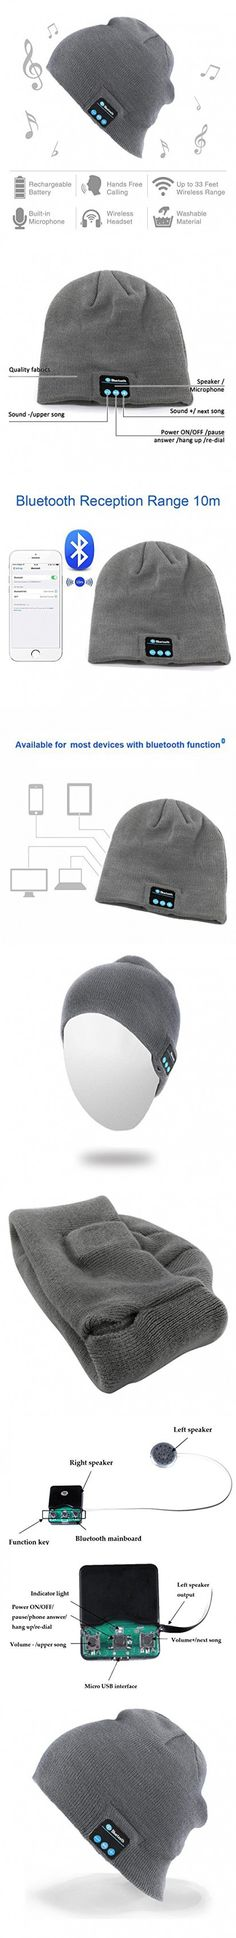 Momoday® Bluetooth Music Soft Warm Beanie Hat Cap with Stereo Headphone Headset Speaker Wireless Mic Hands-free for Men Women Speaker Winter Outdoor Sport Best Gift (Light Grey) Gift Sets For Women, Best Gifts For Men, Gifts For Dad, Stereo Headphones, Wireless Speakers, Bluetooth, Best Home Theater System, Short Waves, Tech Toys